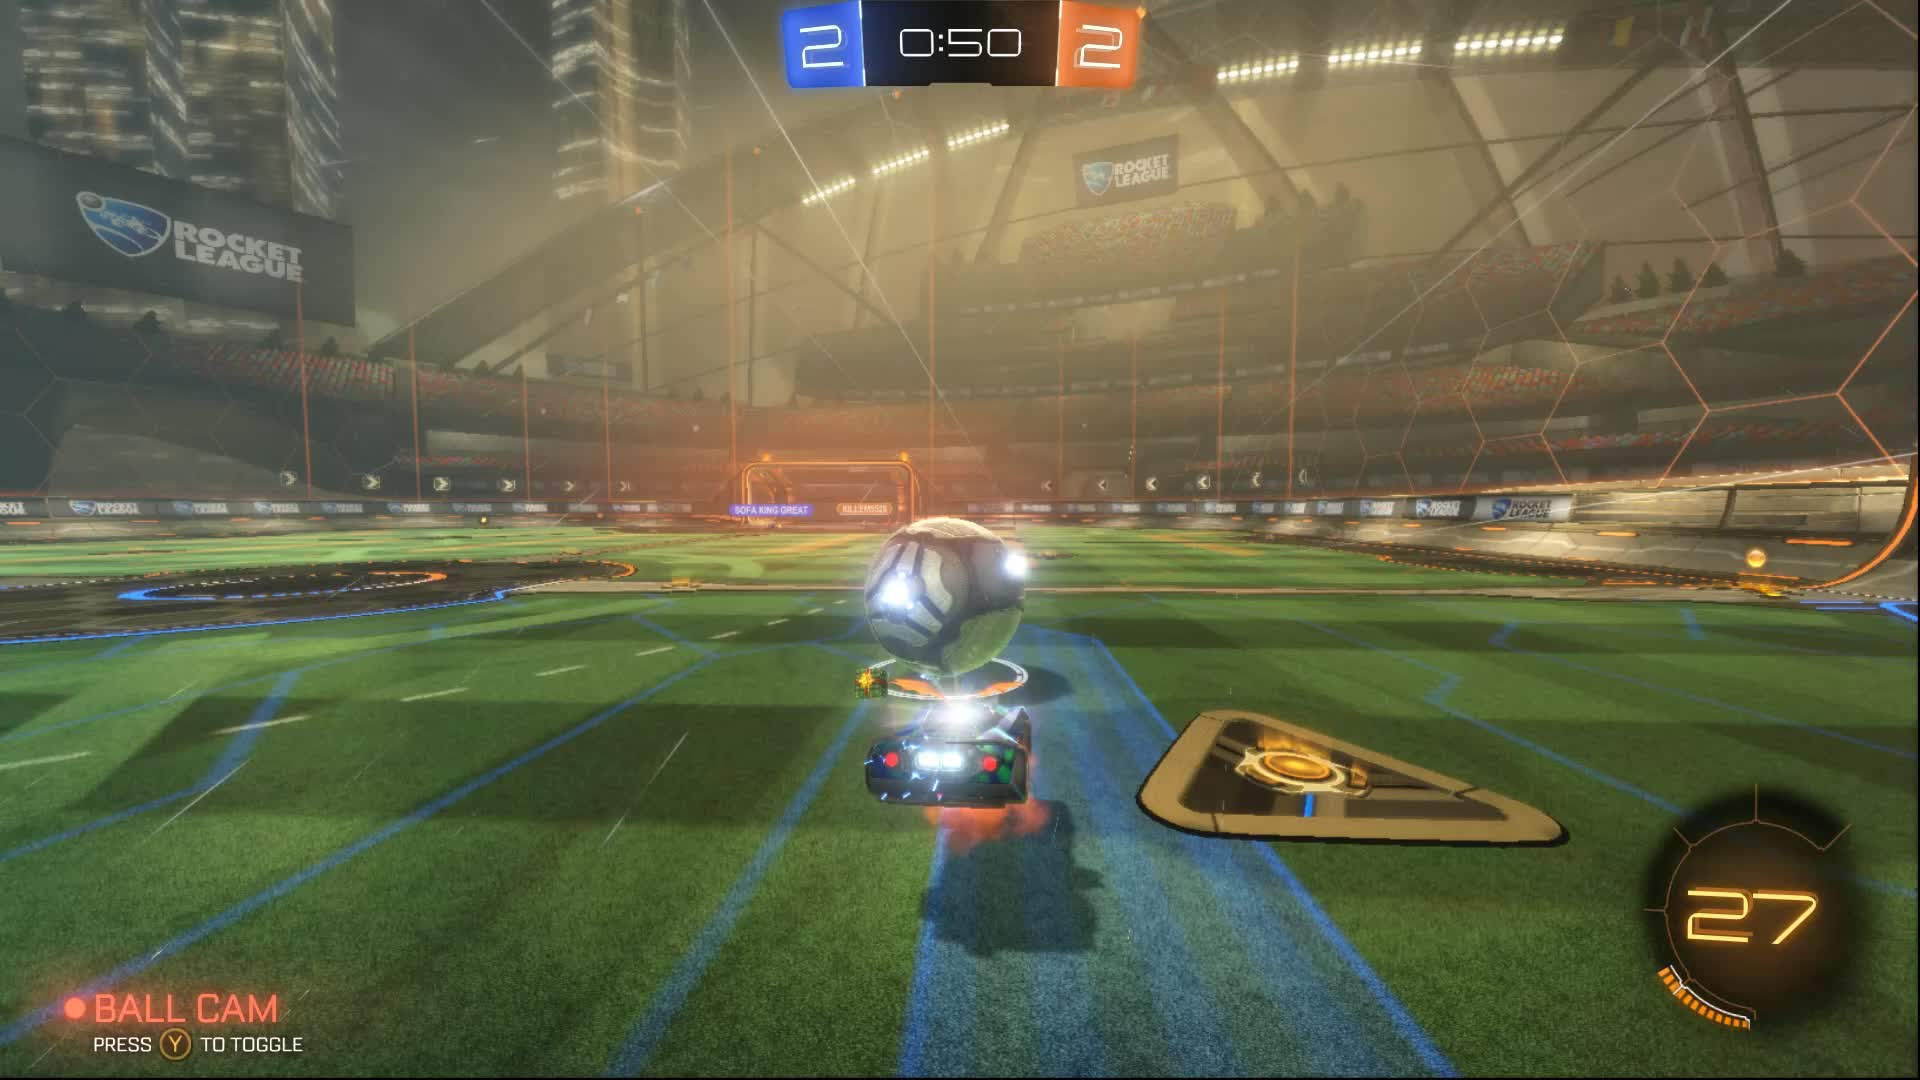 RocketLeague, double touch rocket league goal GIFs